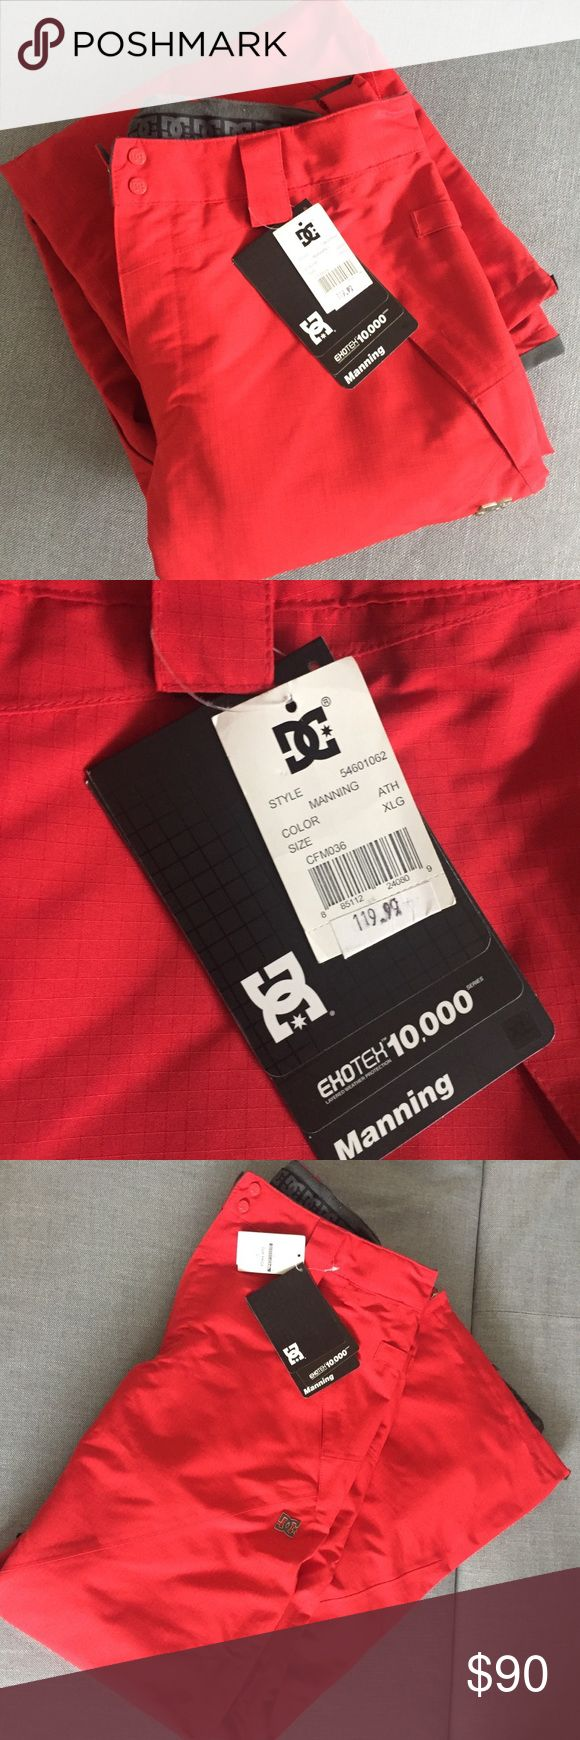 NWT DC MEN'S SNOWBOARD PANTS - 10,000MM RATING Brand new with tag DC brand men's red snowboard pants. Exotex 10,000 series. Tag reads: lightweight and versatile for changing conditions. The 10,000MM waterproof rating provides excellent resistance to snow, rain and wind, while layered fabrics traps body heat, allowing perspiration to escape. Adjustable Velcro straps on waist to get exact fit. Also snaps and zips. Lots of pockets. Bottoms have waterproof layer to fit over boots and zippers to…